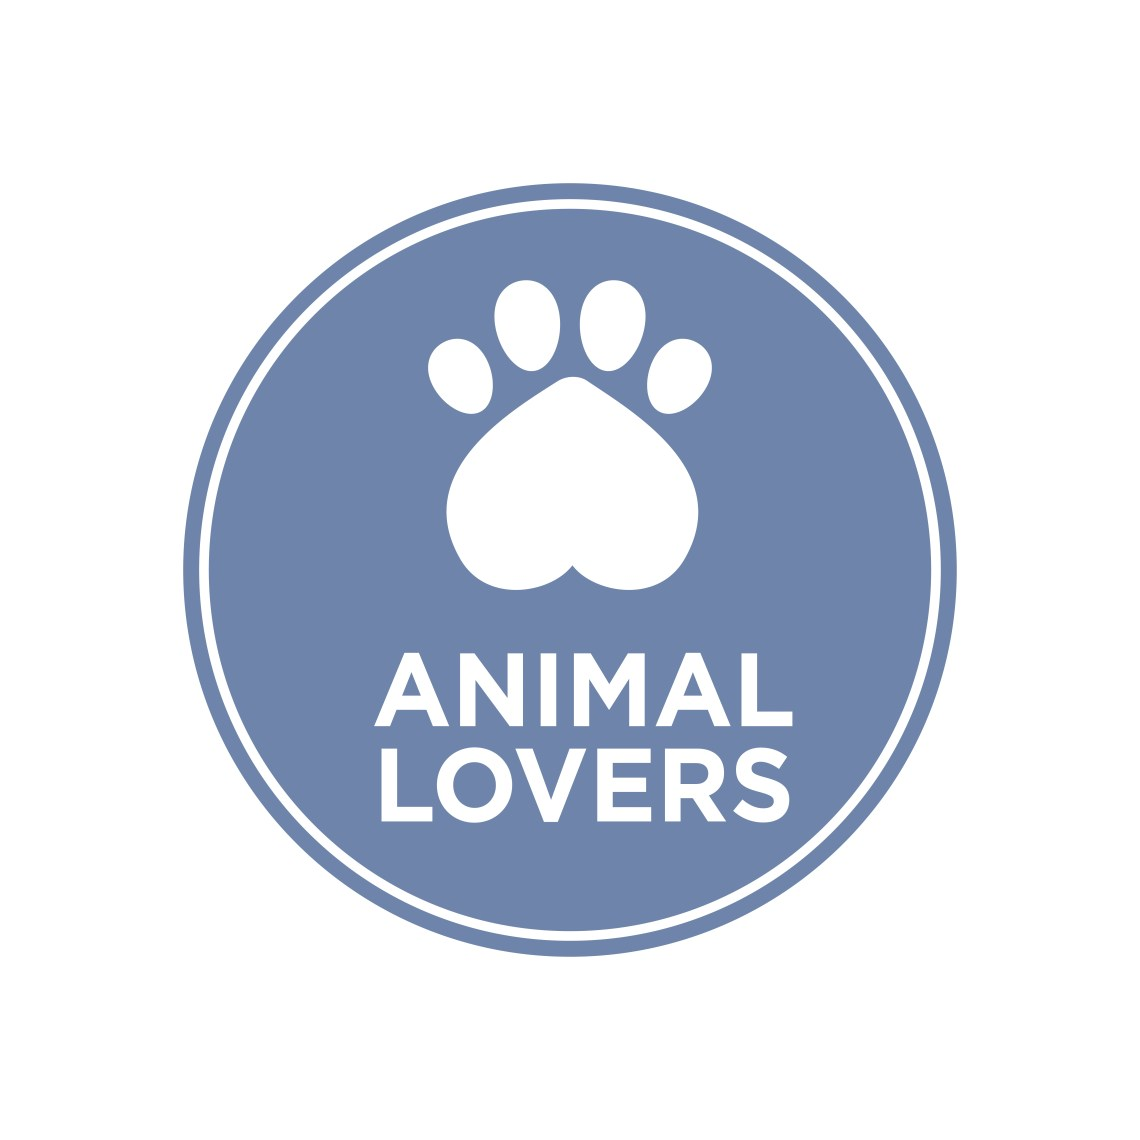 Download Animal lovers icon. - Download Free Vectors, Clipart ...